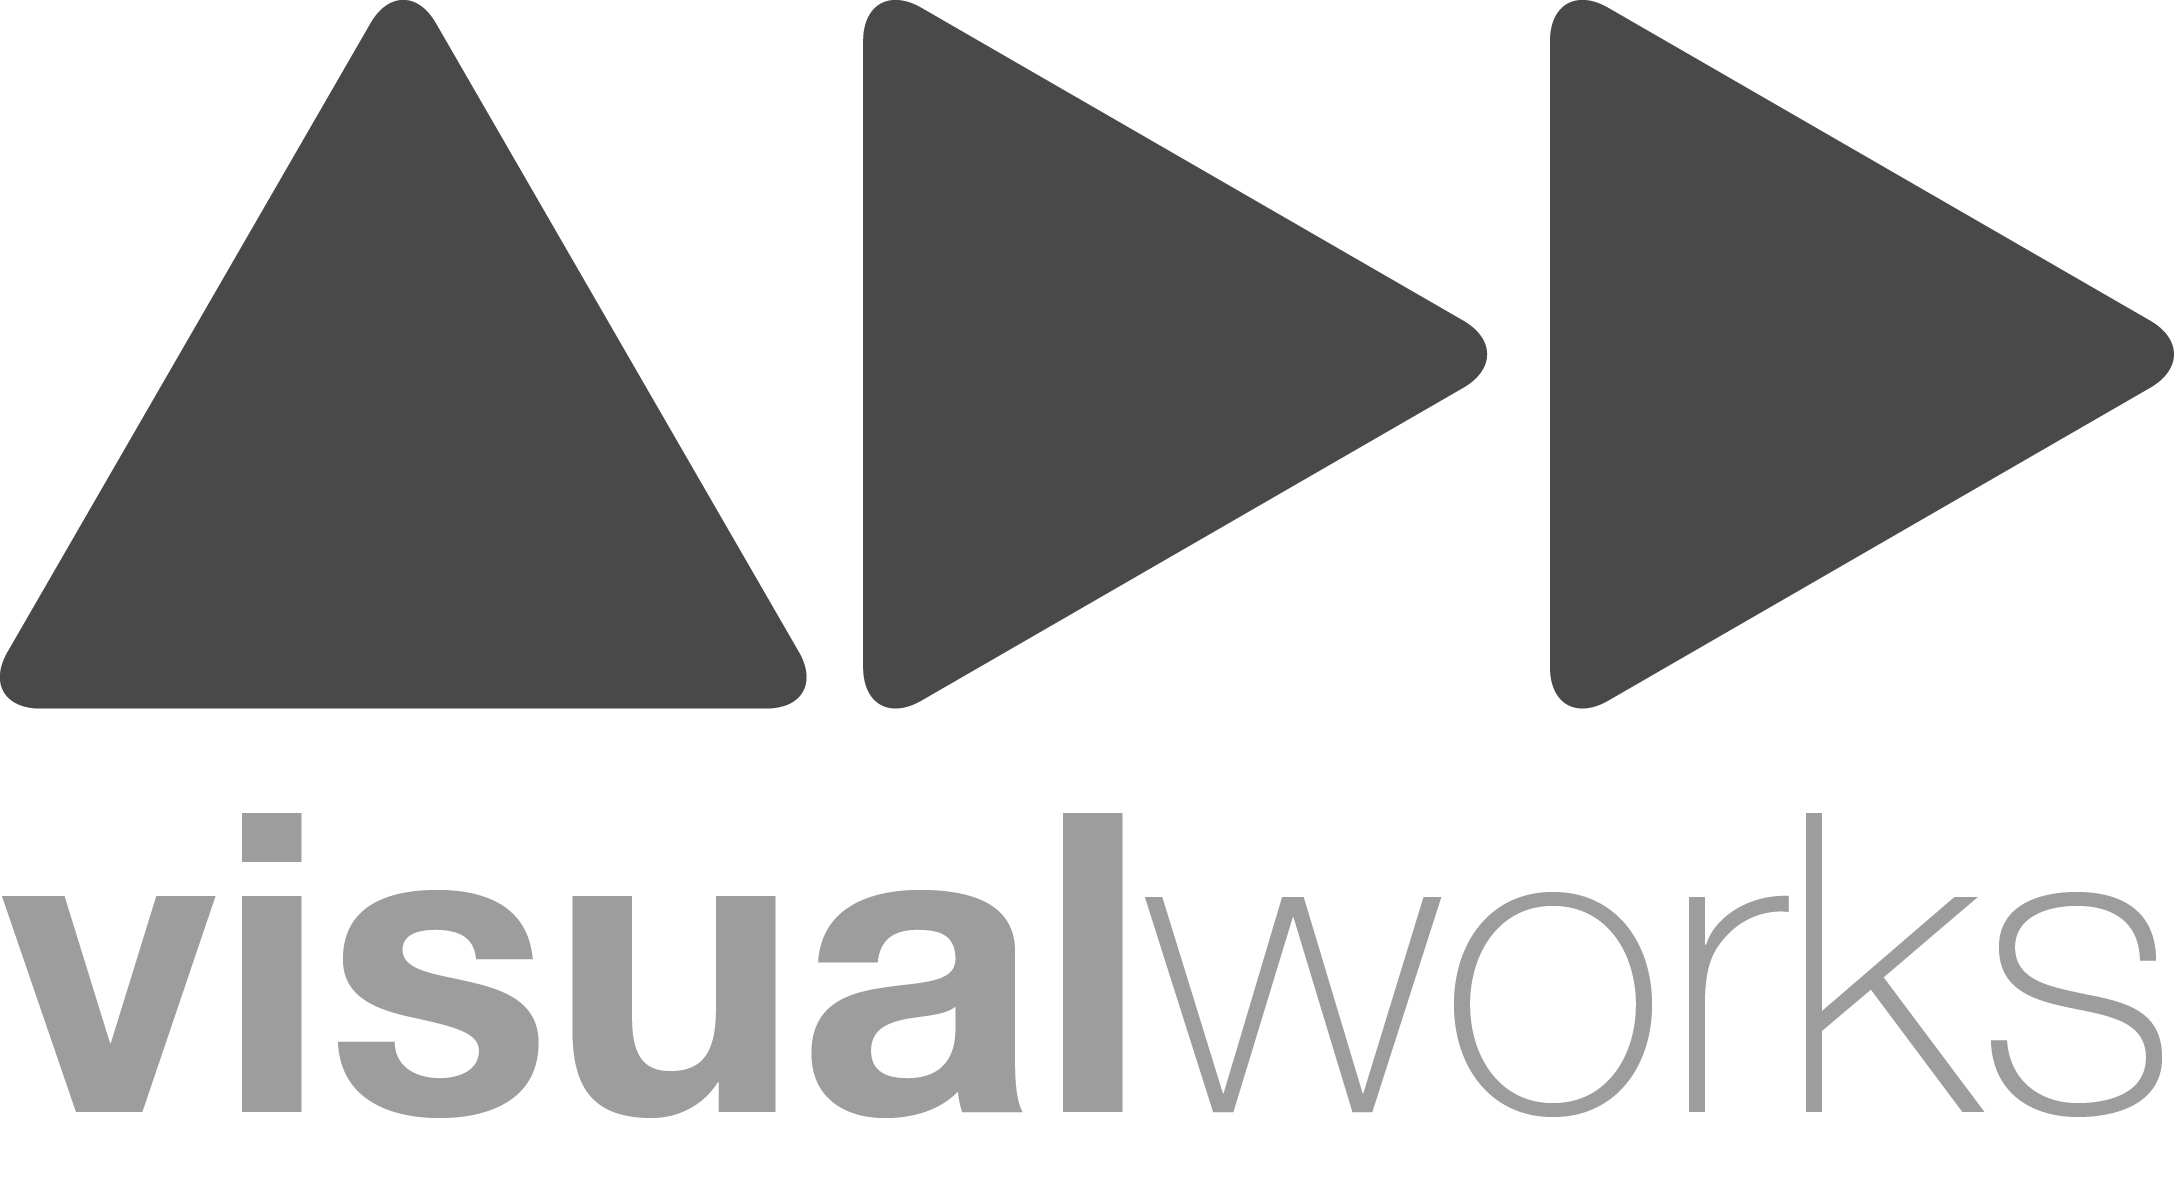 Add Visual Works